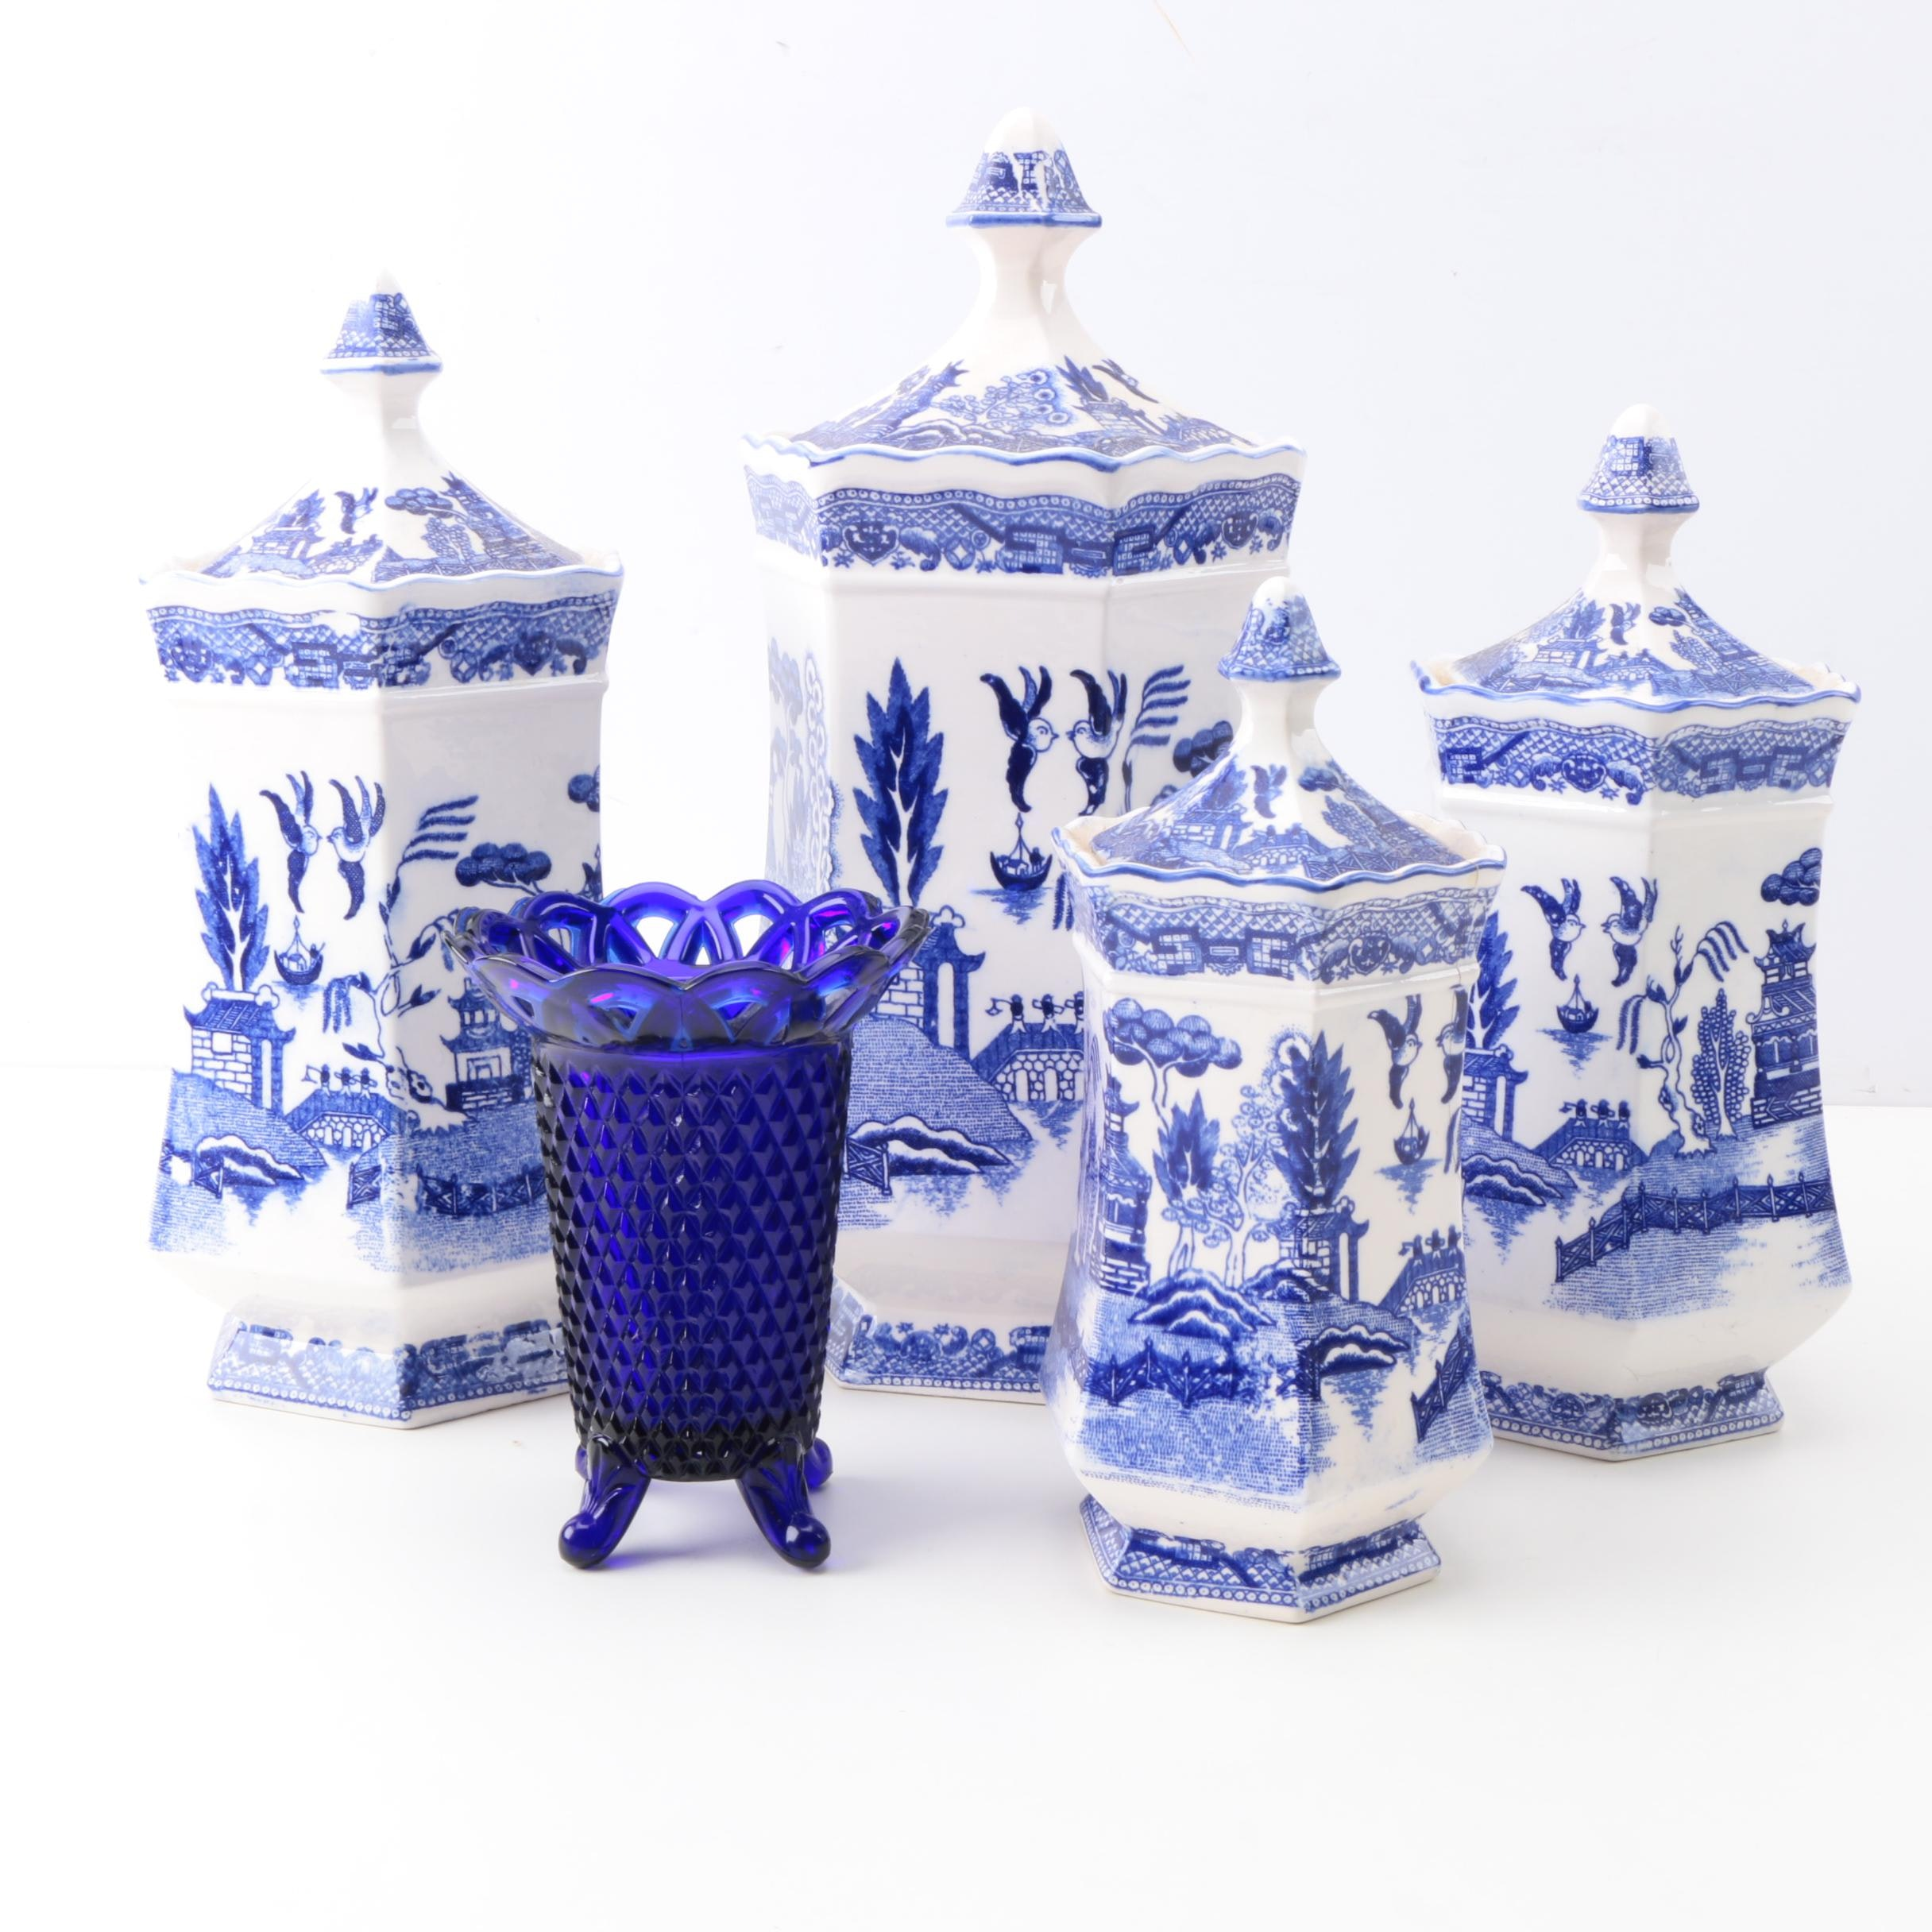 Quot Blue Willow Quot Transferware Ceramic Canisters And Cobalt